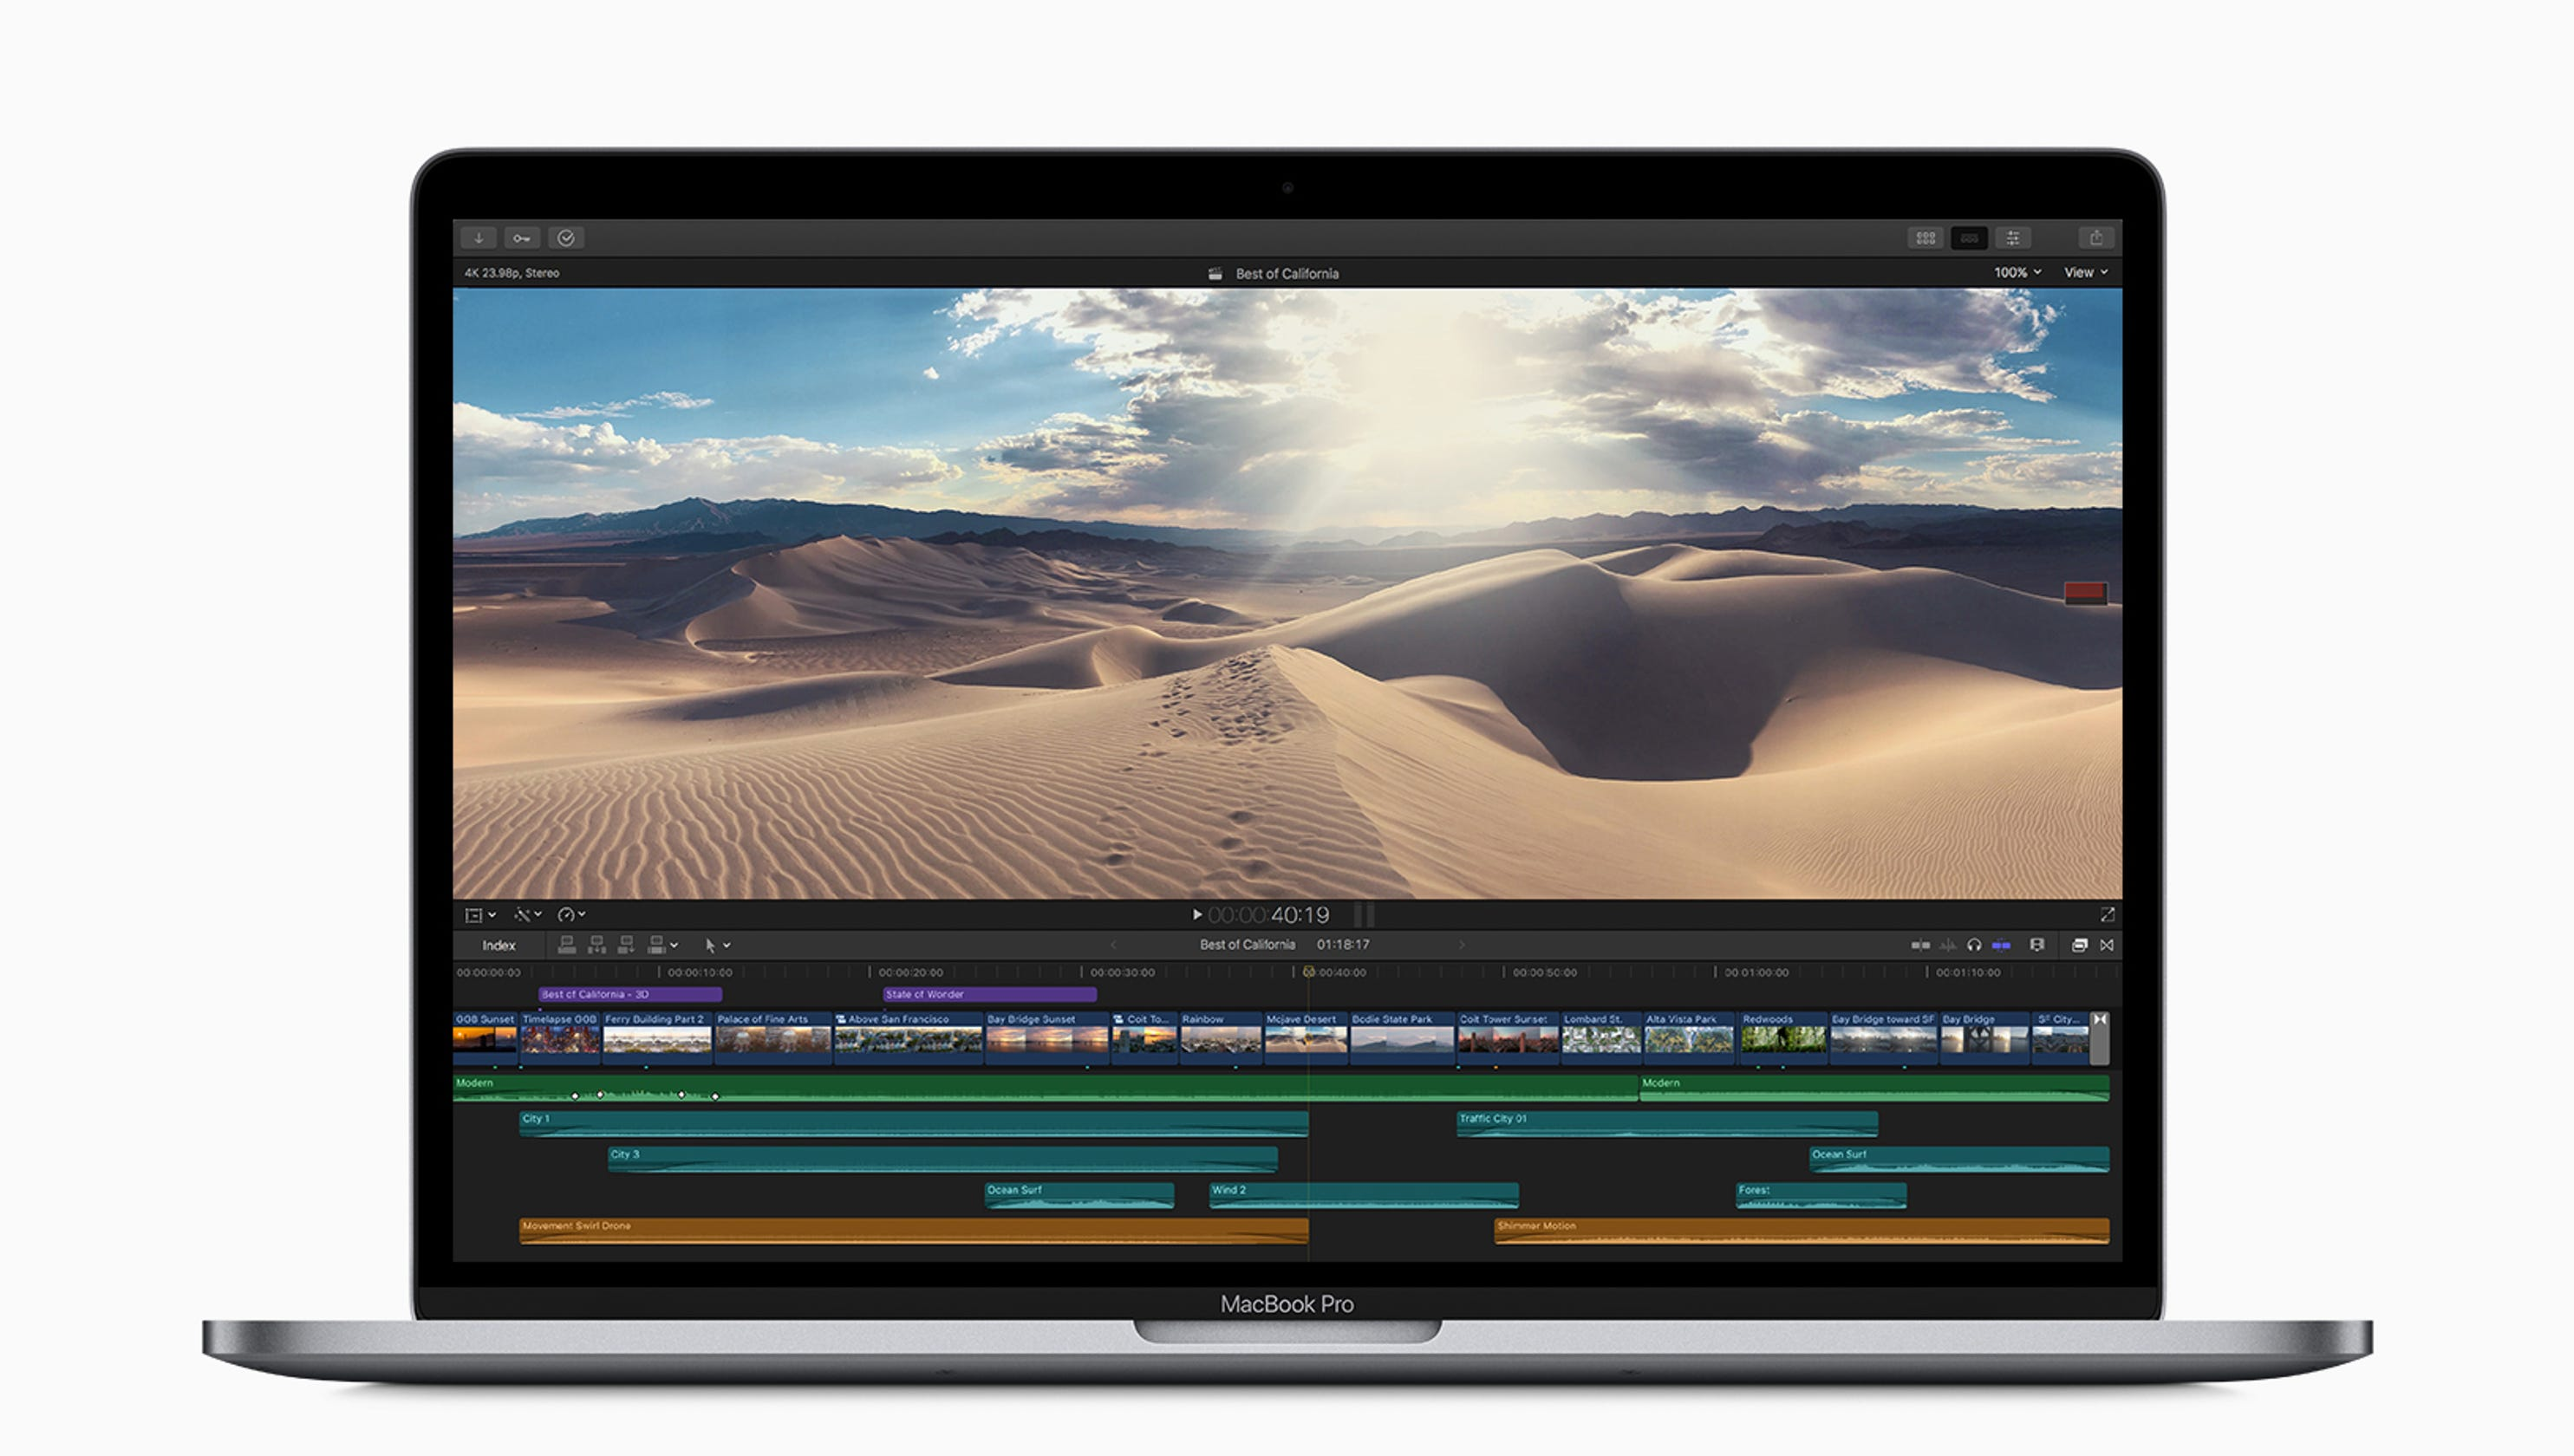 Have sticky, broken keys on your MacBook? Apple may fix it